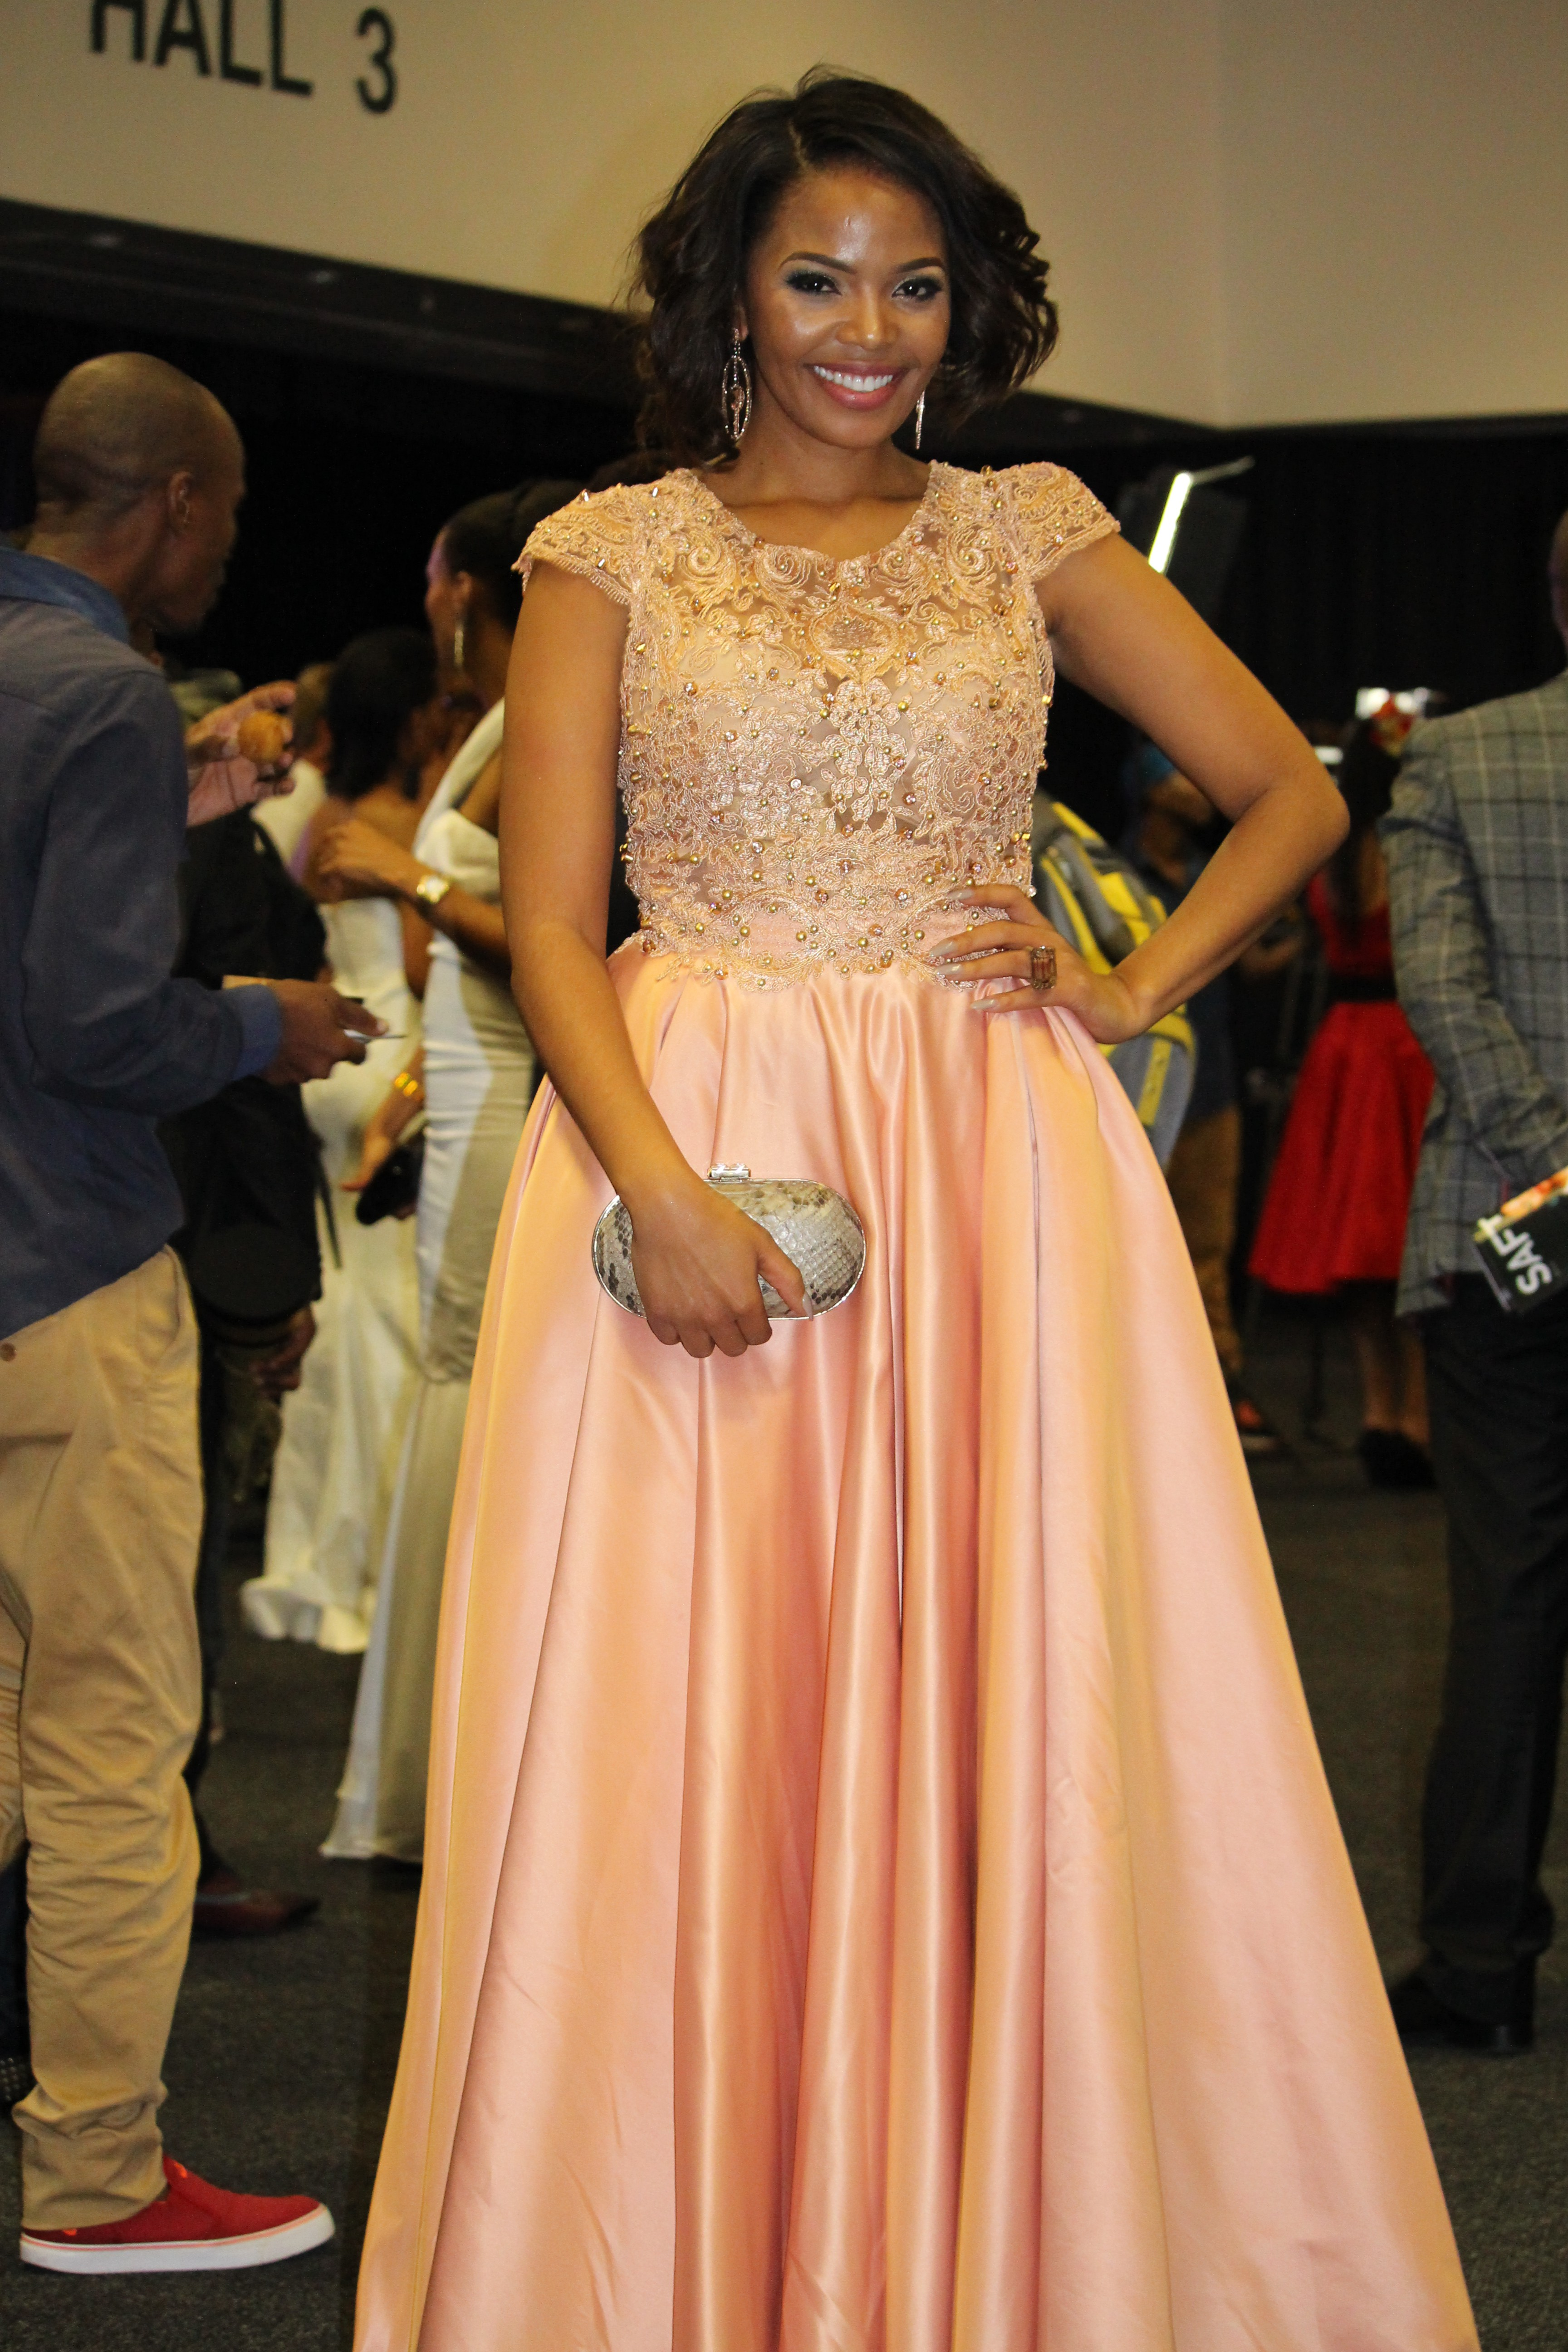 Fashion 2017 durban july - The Best And Worst Fashion At The South African Film And